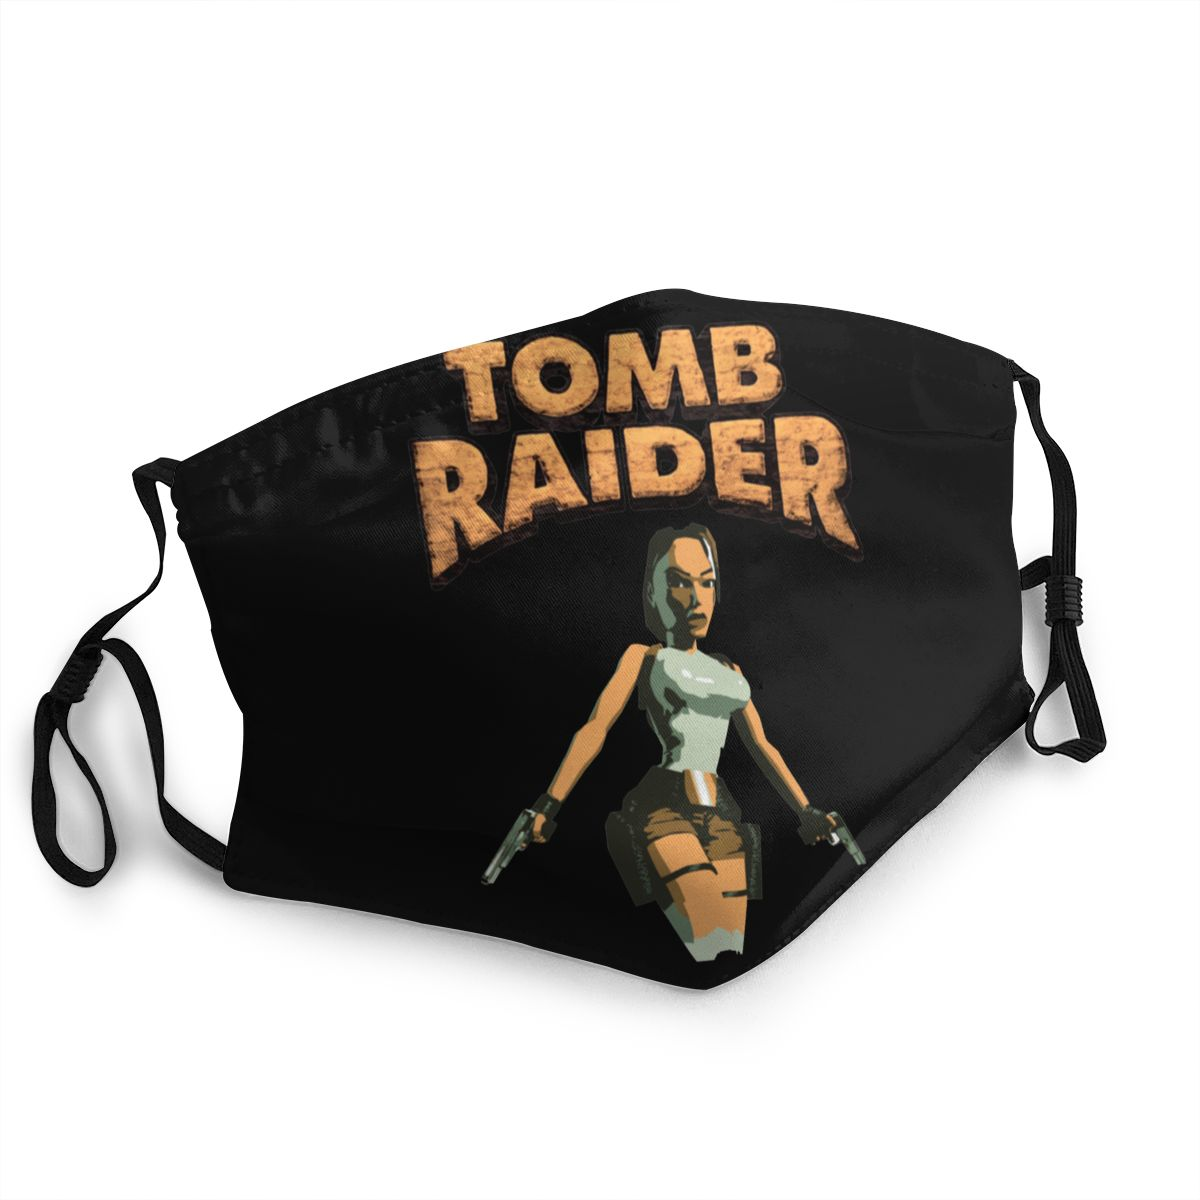 Tomb Raider Lara Croft Unisex Reusable Face Mask Anti Haze Dust Mask Protection Cover Respirator Mouth Muffle